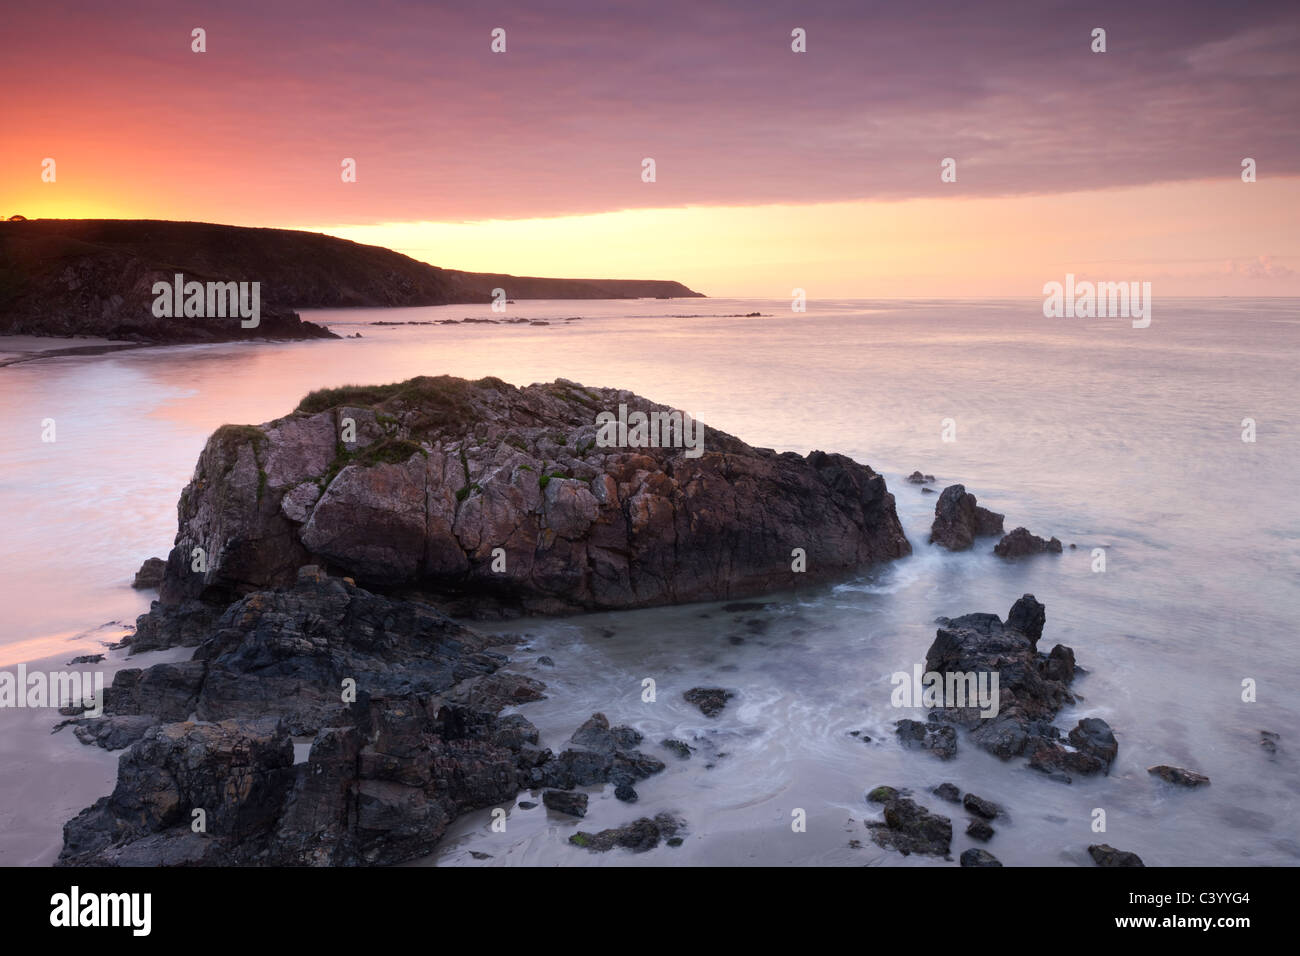 Sunrise over Kennack Sands on the Lizard Peninsula, Cornwall, England. Spring (May) 2011. Stock Photo